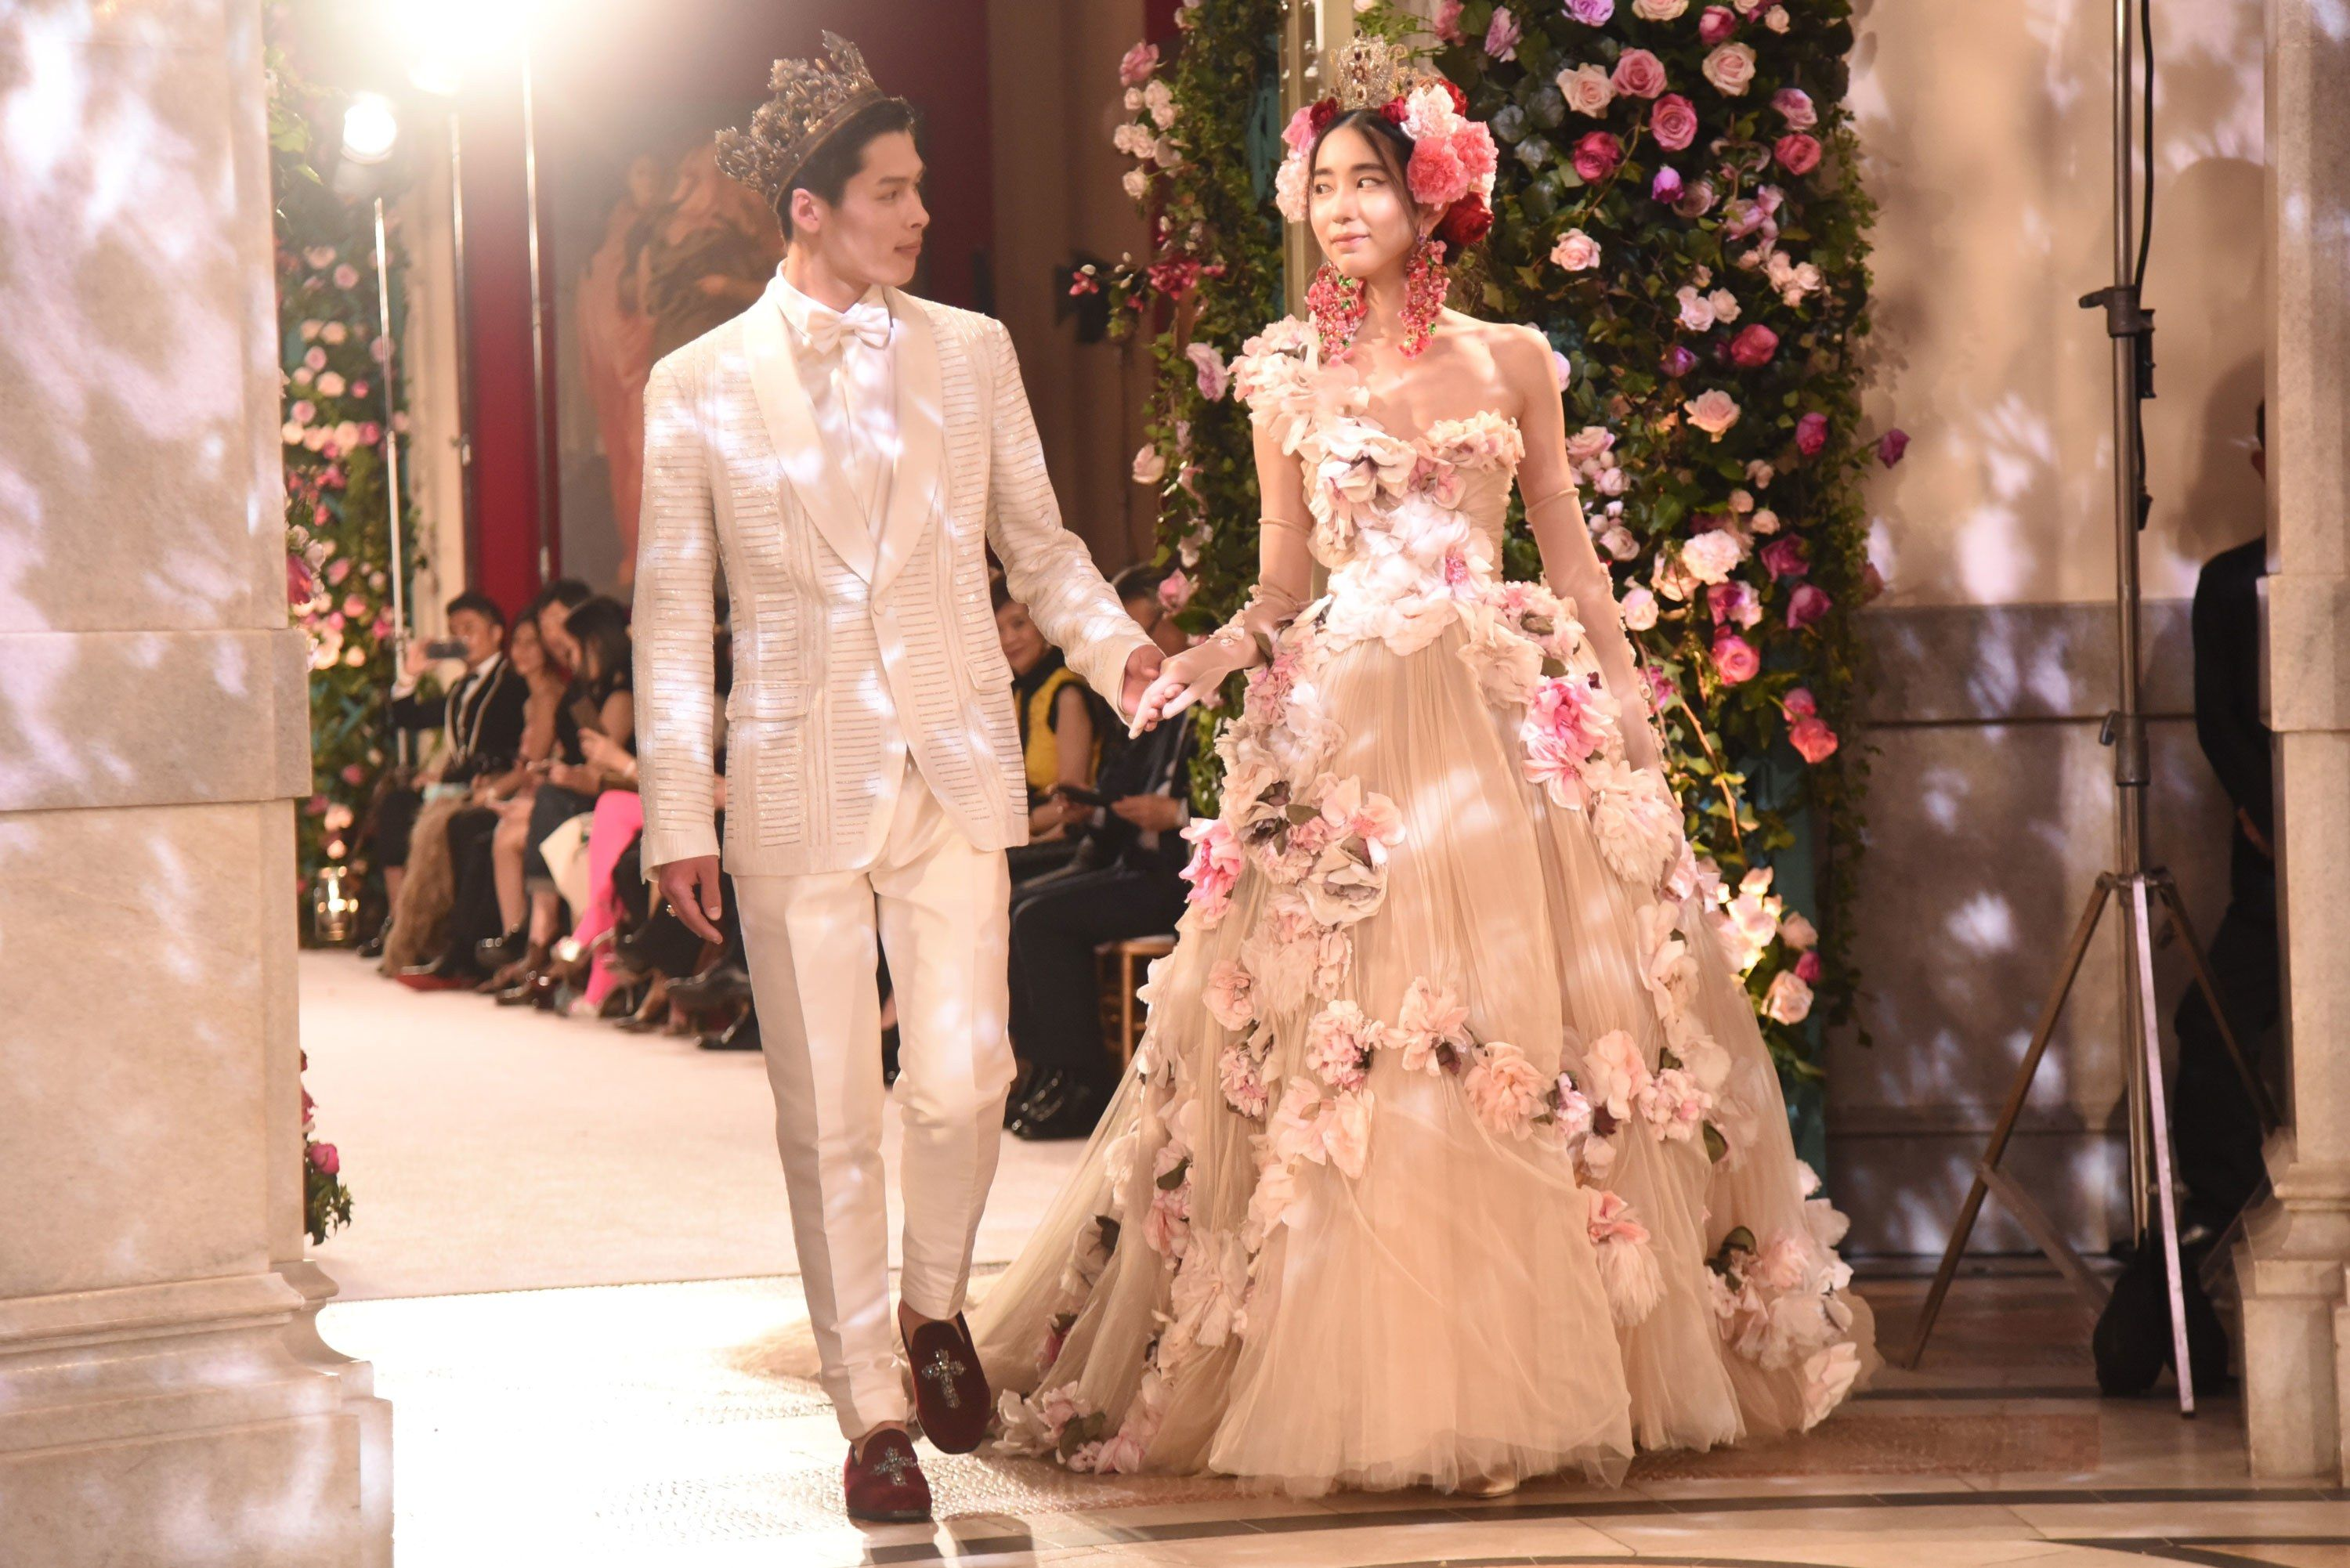 Dolce gabbana s cherry blossom couture lands in tokyo for Dolce gabbana wedding dress